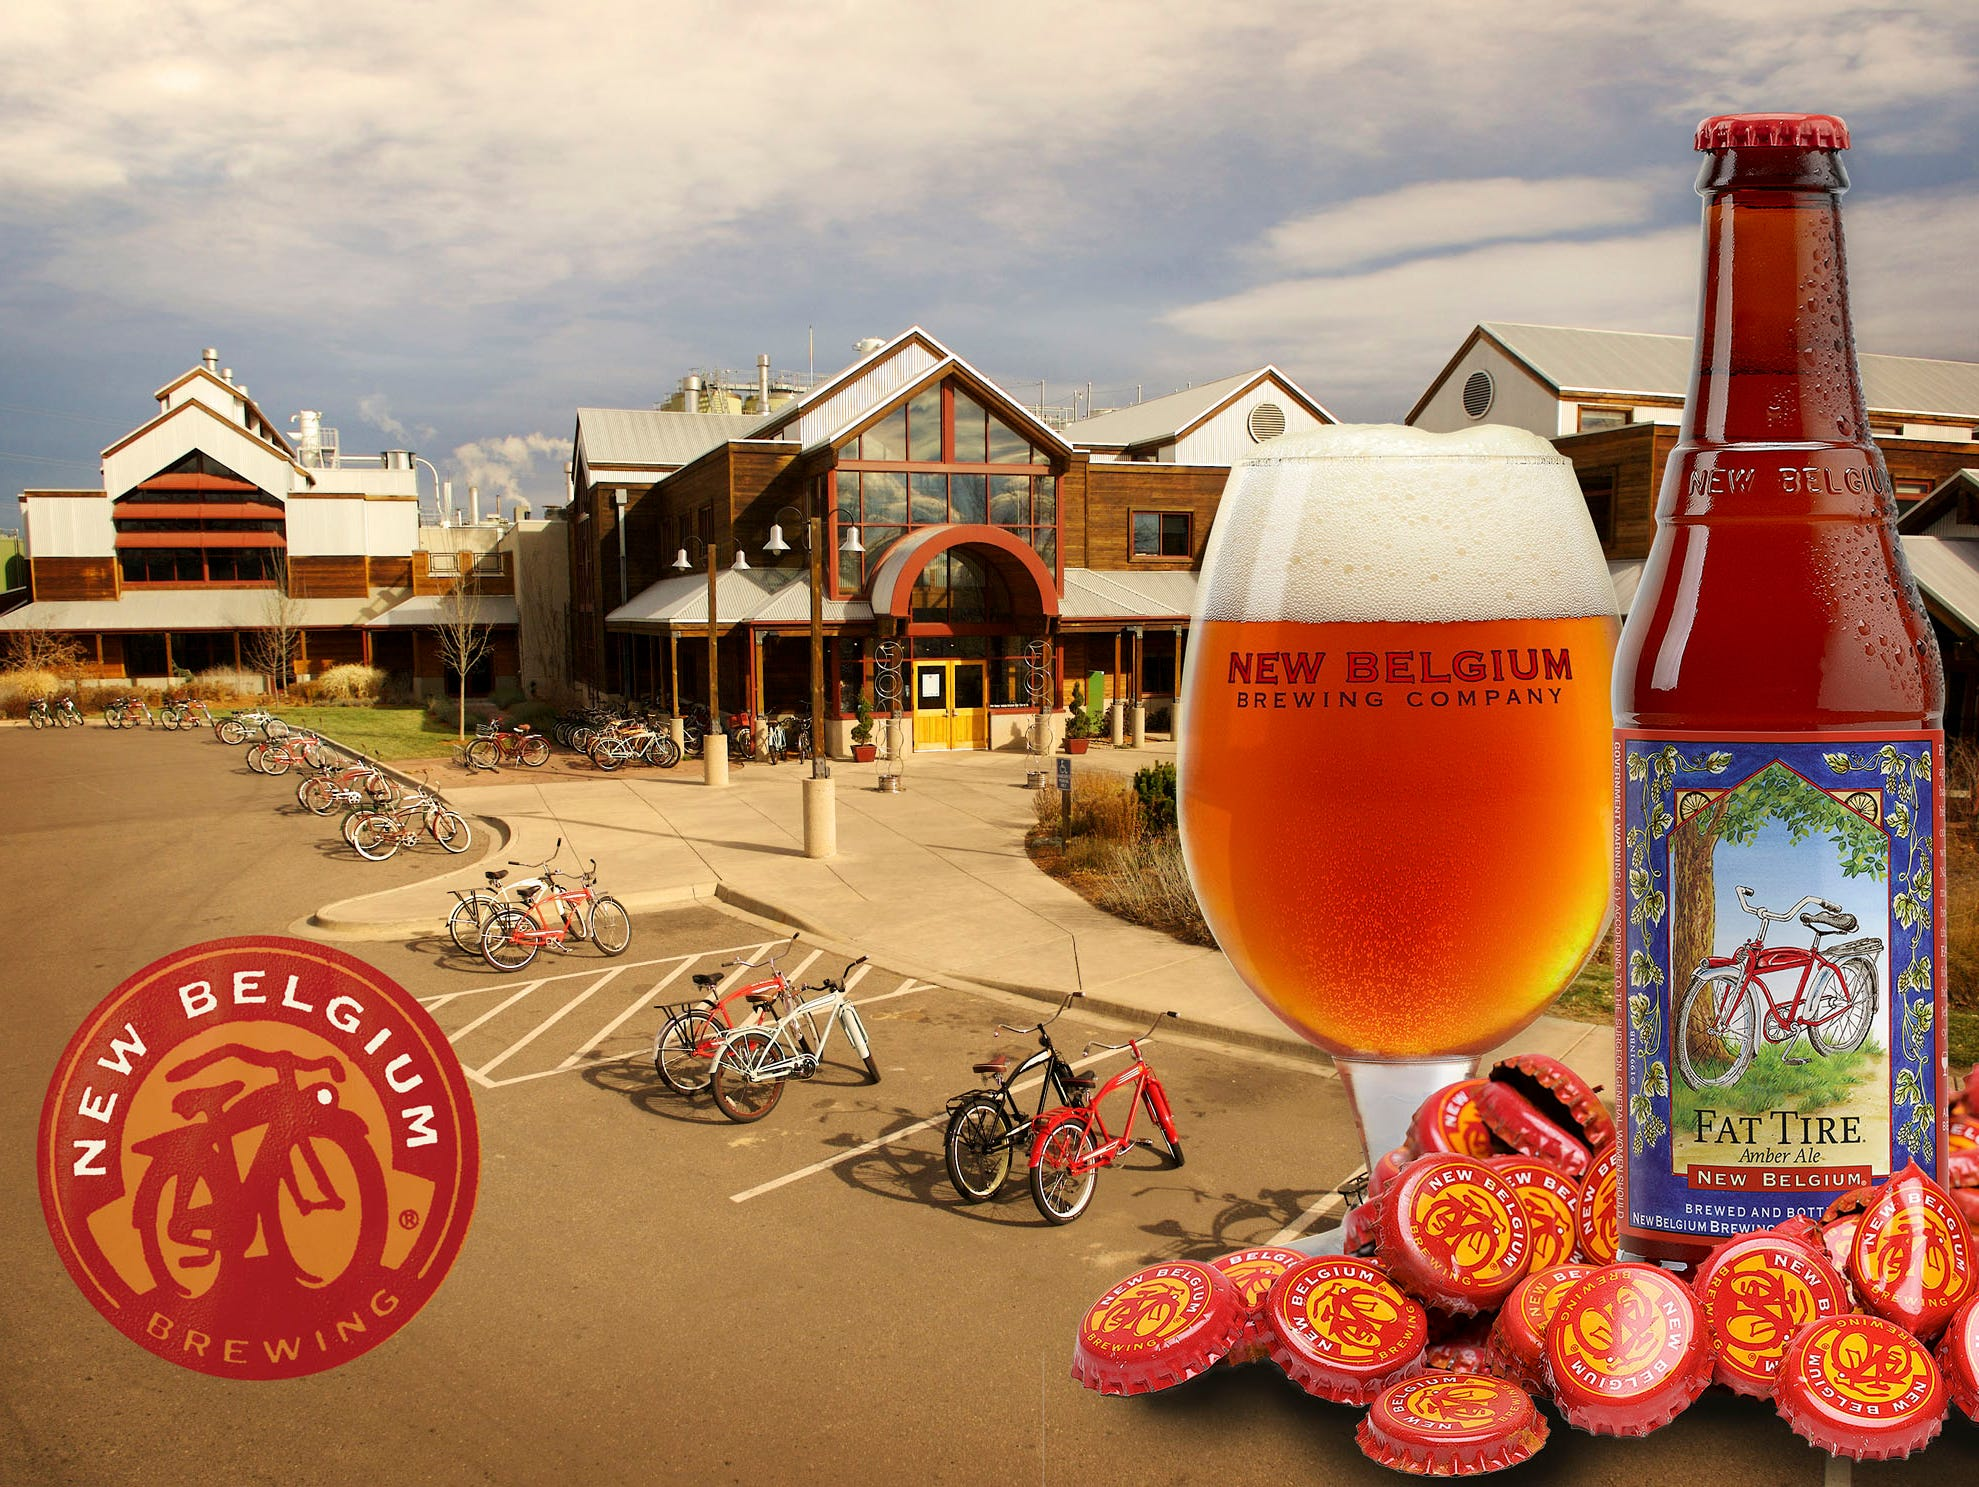 social and ethical responsibility new belgium brewery Consider the arguments for and against social responsibility, as listed in figure 44 in the text the new belgium brewery managers featured in the video are likely to agree with the arguments for social responsibility.